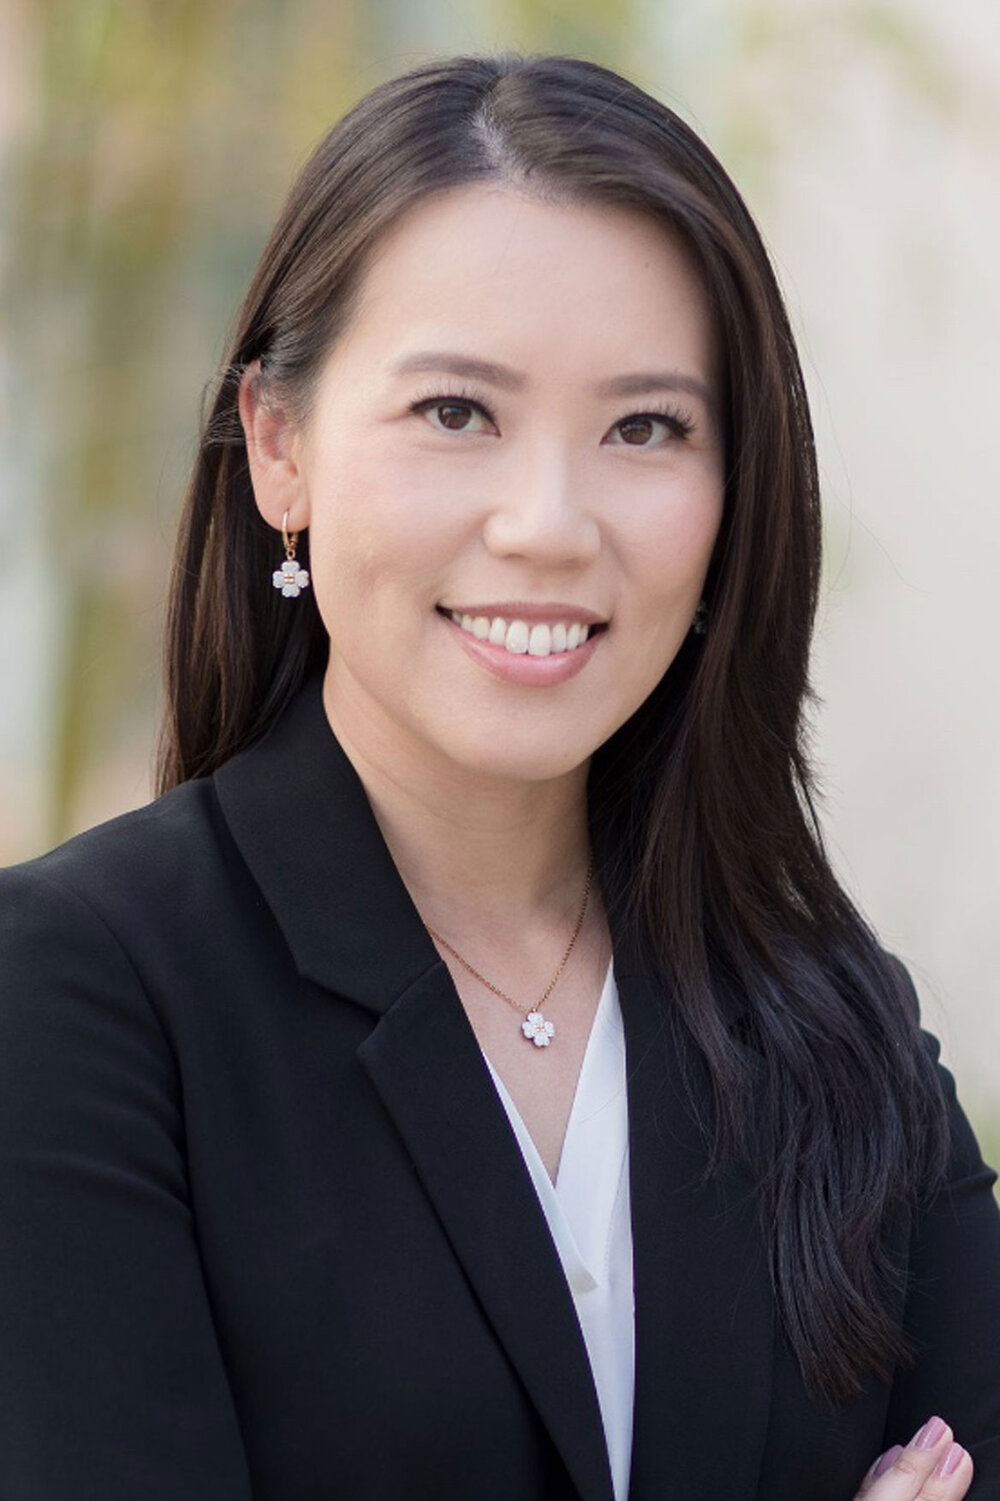 jennifer-fu-rosemead-estate-planning-attorney-amity-law-group